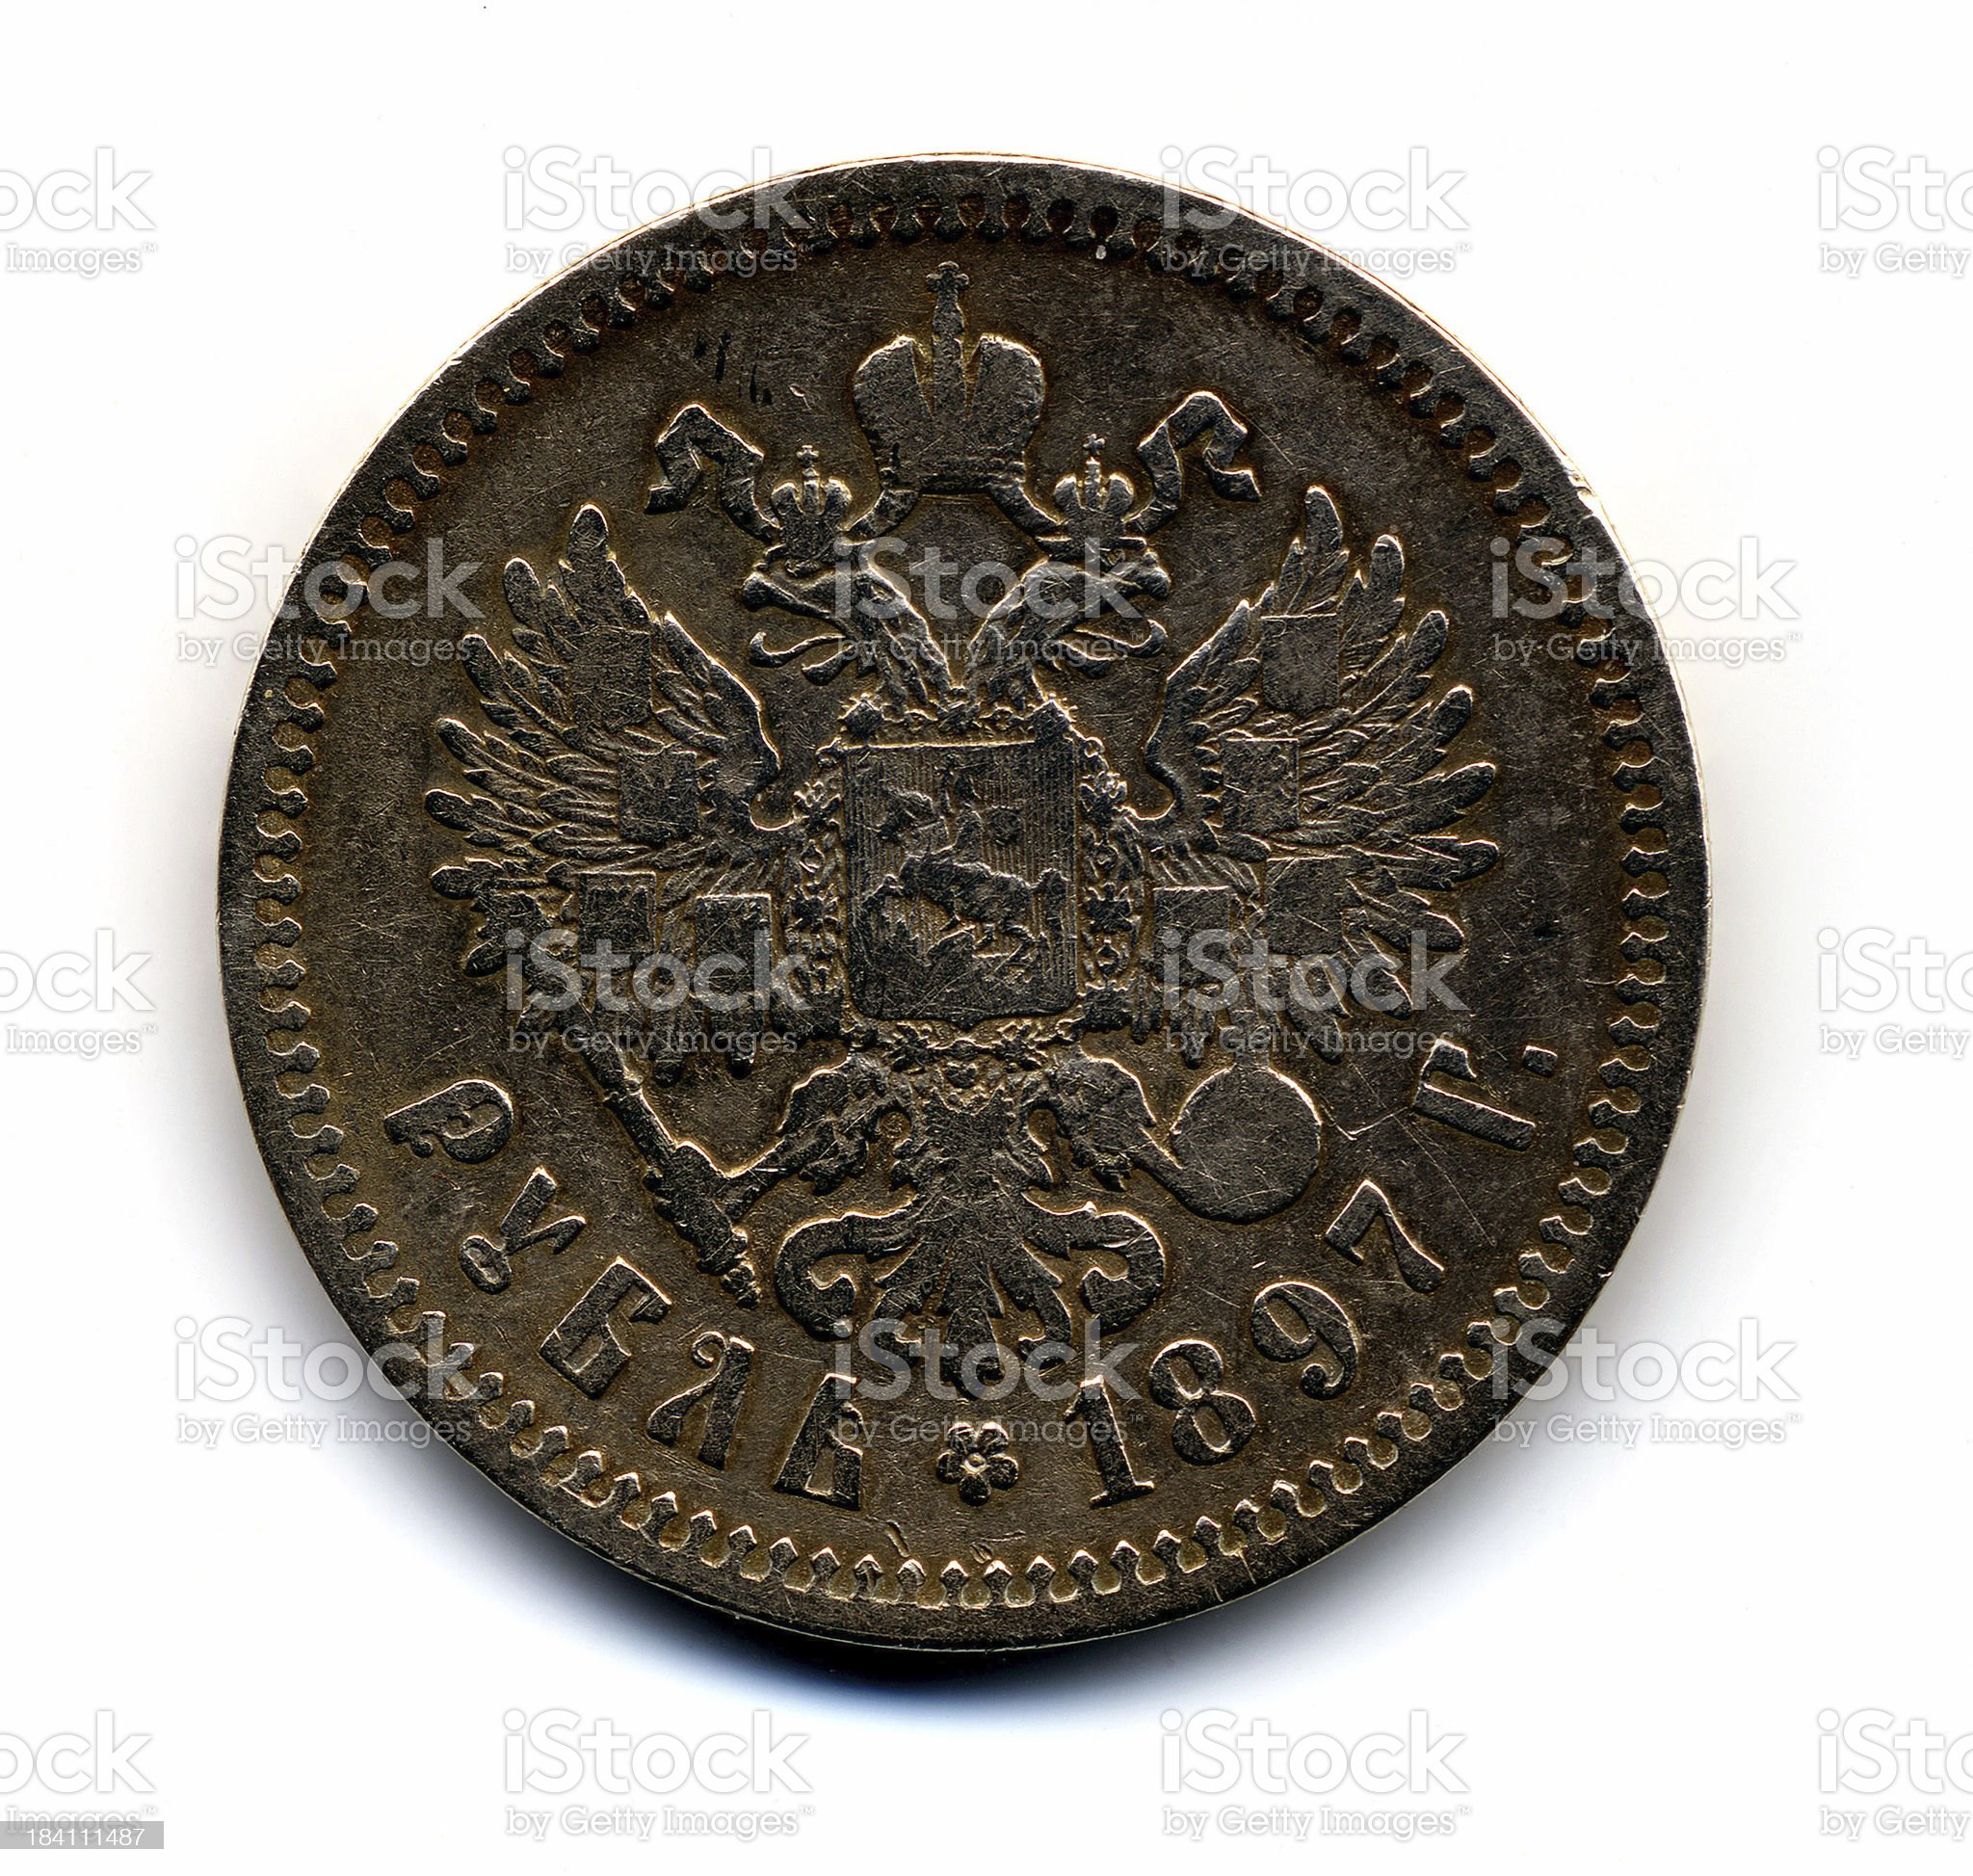 Old Russian coin royalty-free stock photo